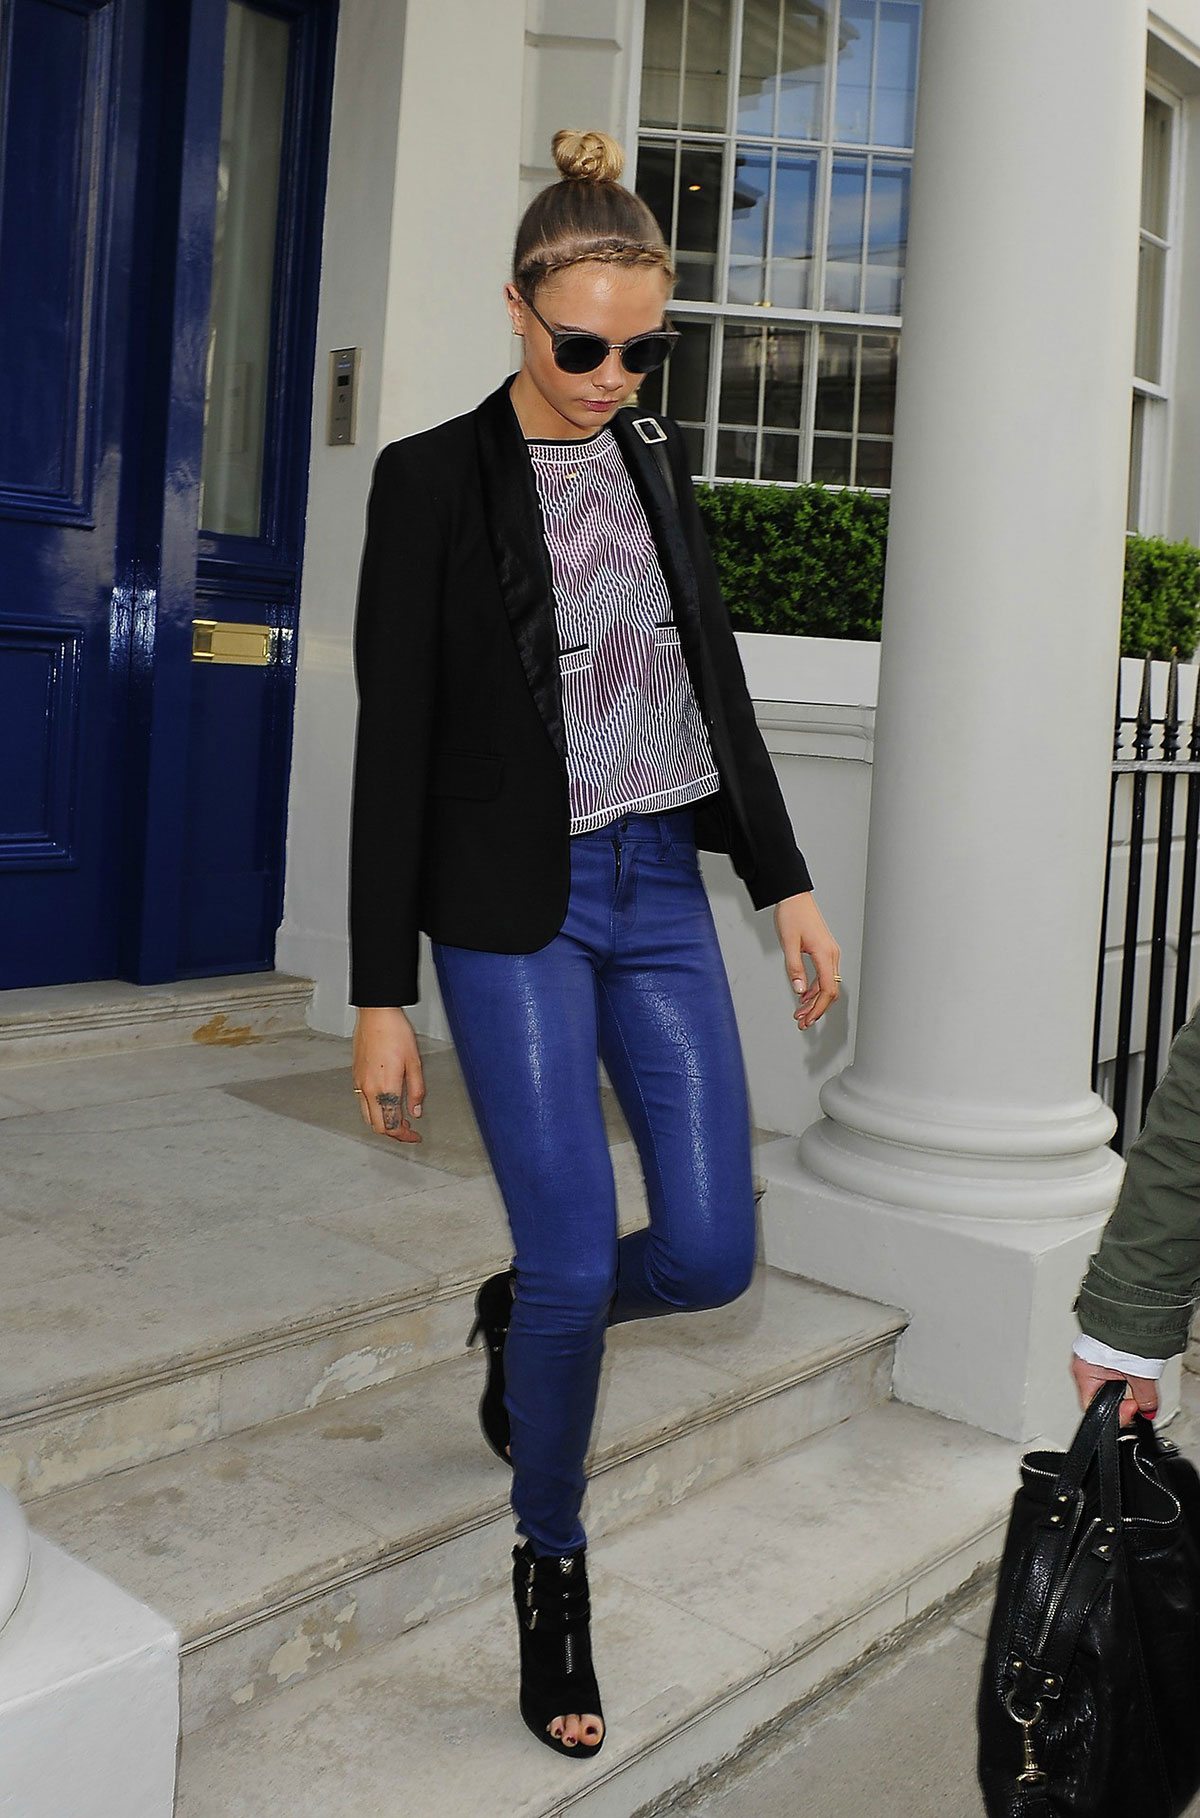 Cara Delevingne seen leaving home and heads to a London hotel